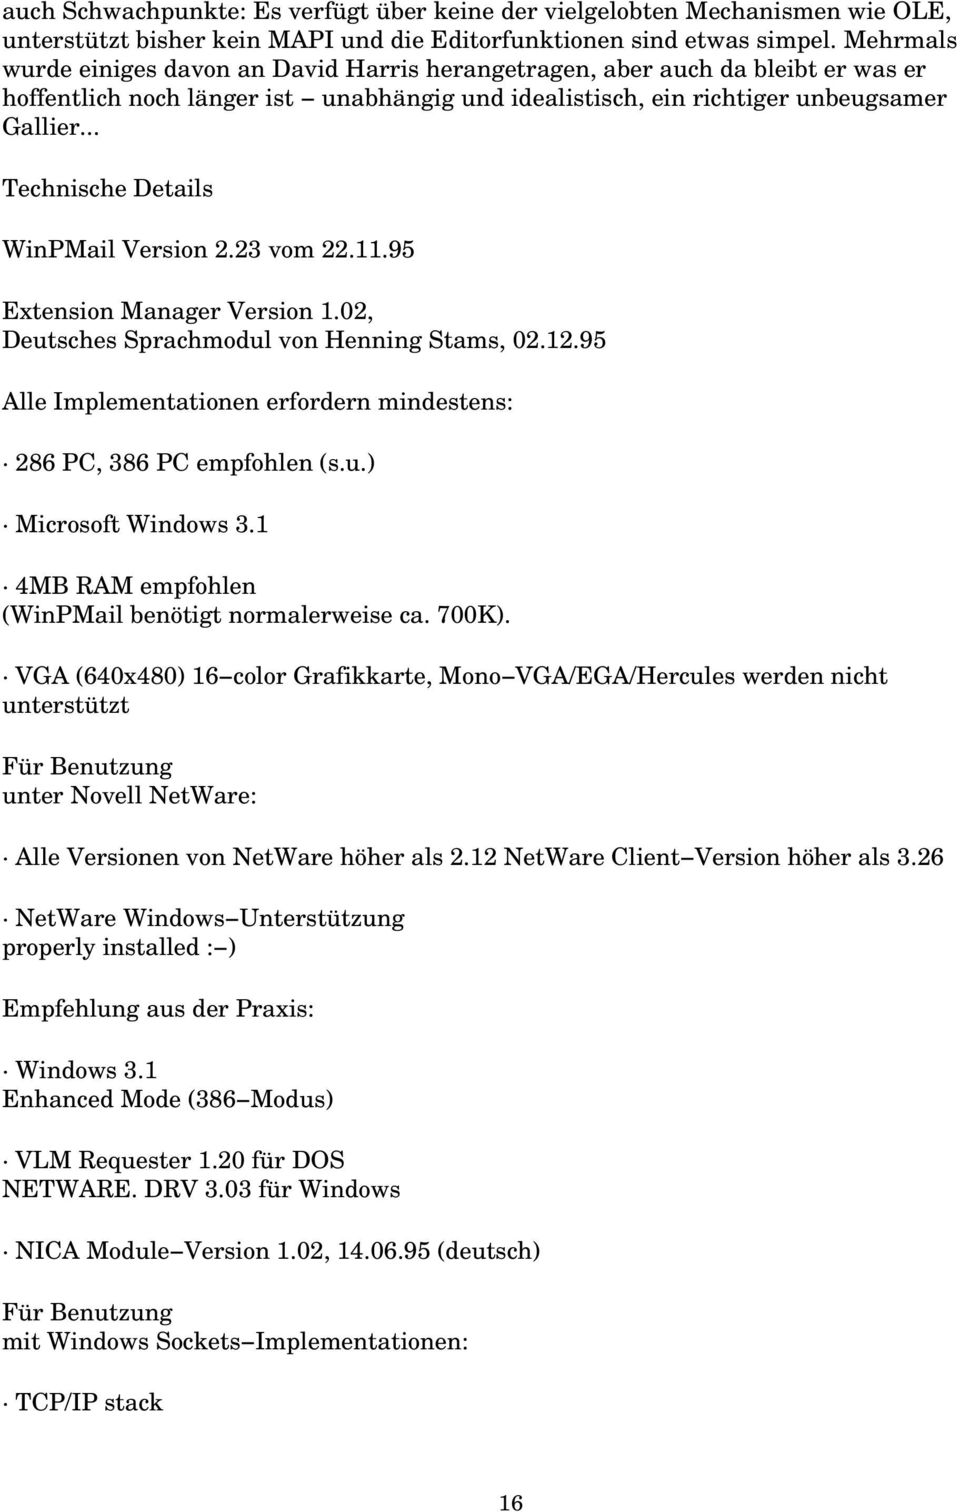 .. Technische Details WinPMail Version 2.23 vom 22.11.95 Extension Manager Version 1.02, Deutsches Sprachmodul von Henning Stams, 02.12.